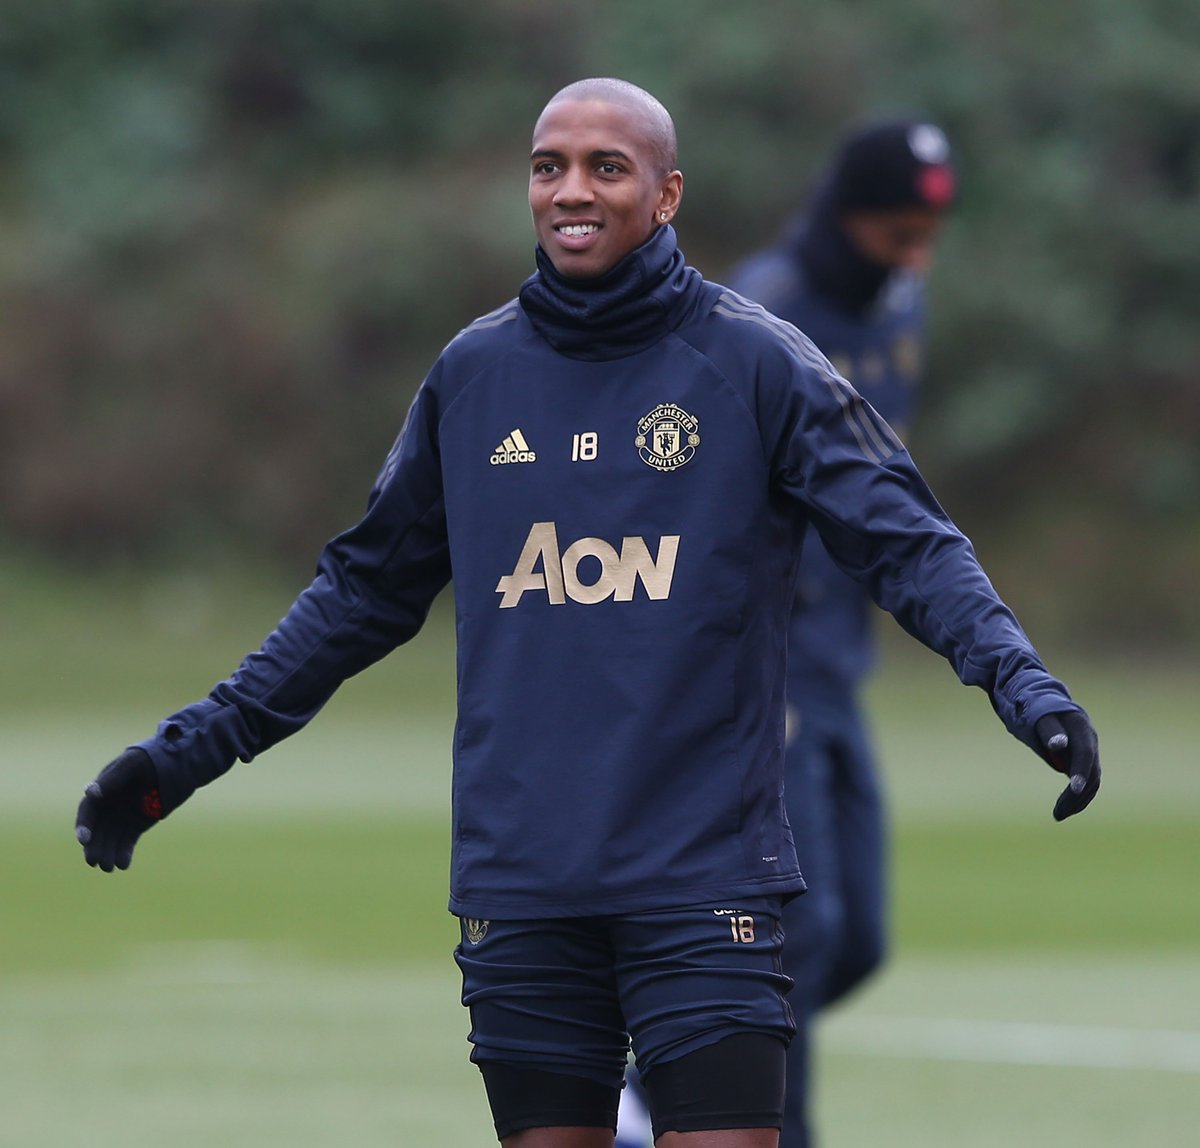 BREAKING: @ManUtd&#39;s @youngy18 in talks to sign new one-year contract #SSN <br>http://pic.twitter.com/Ts1UbO74b6